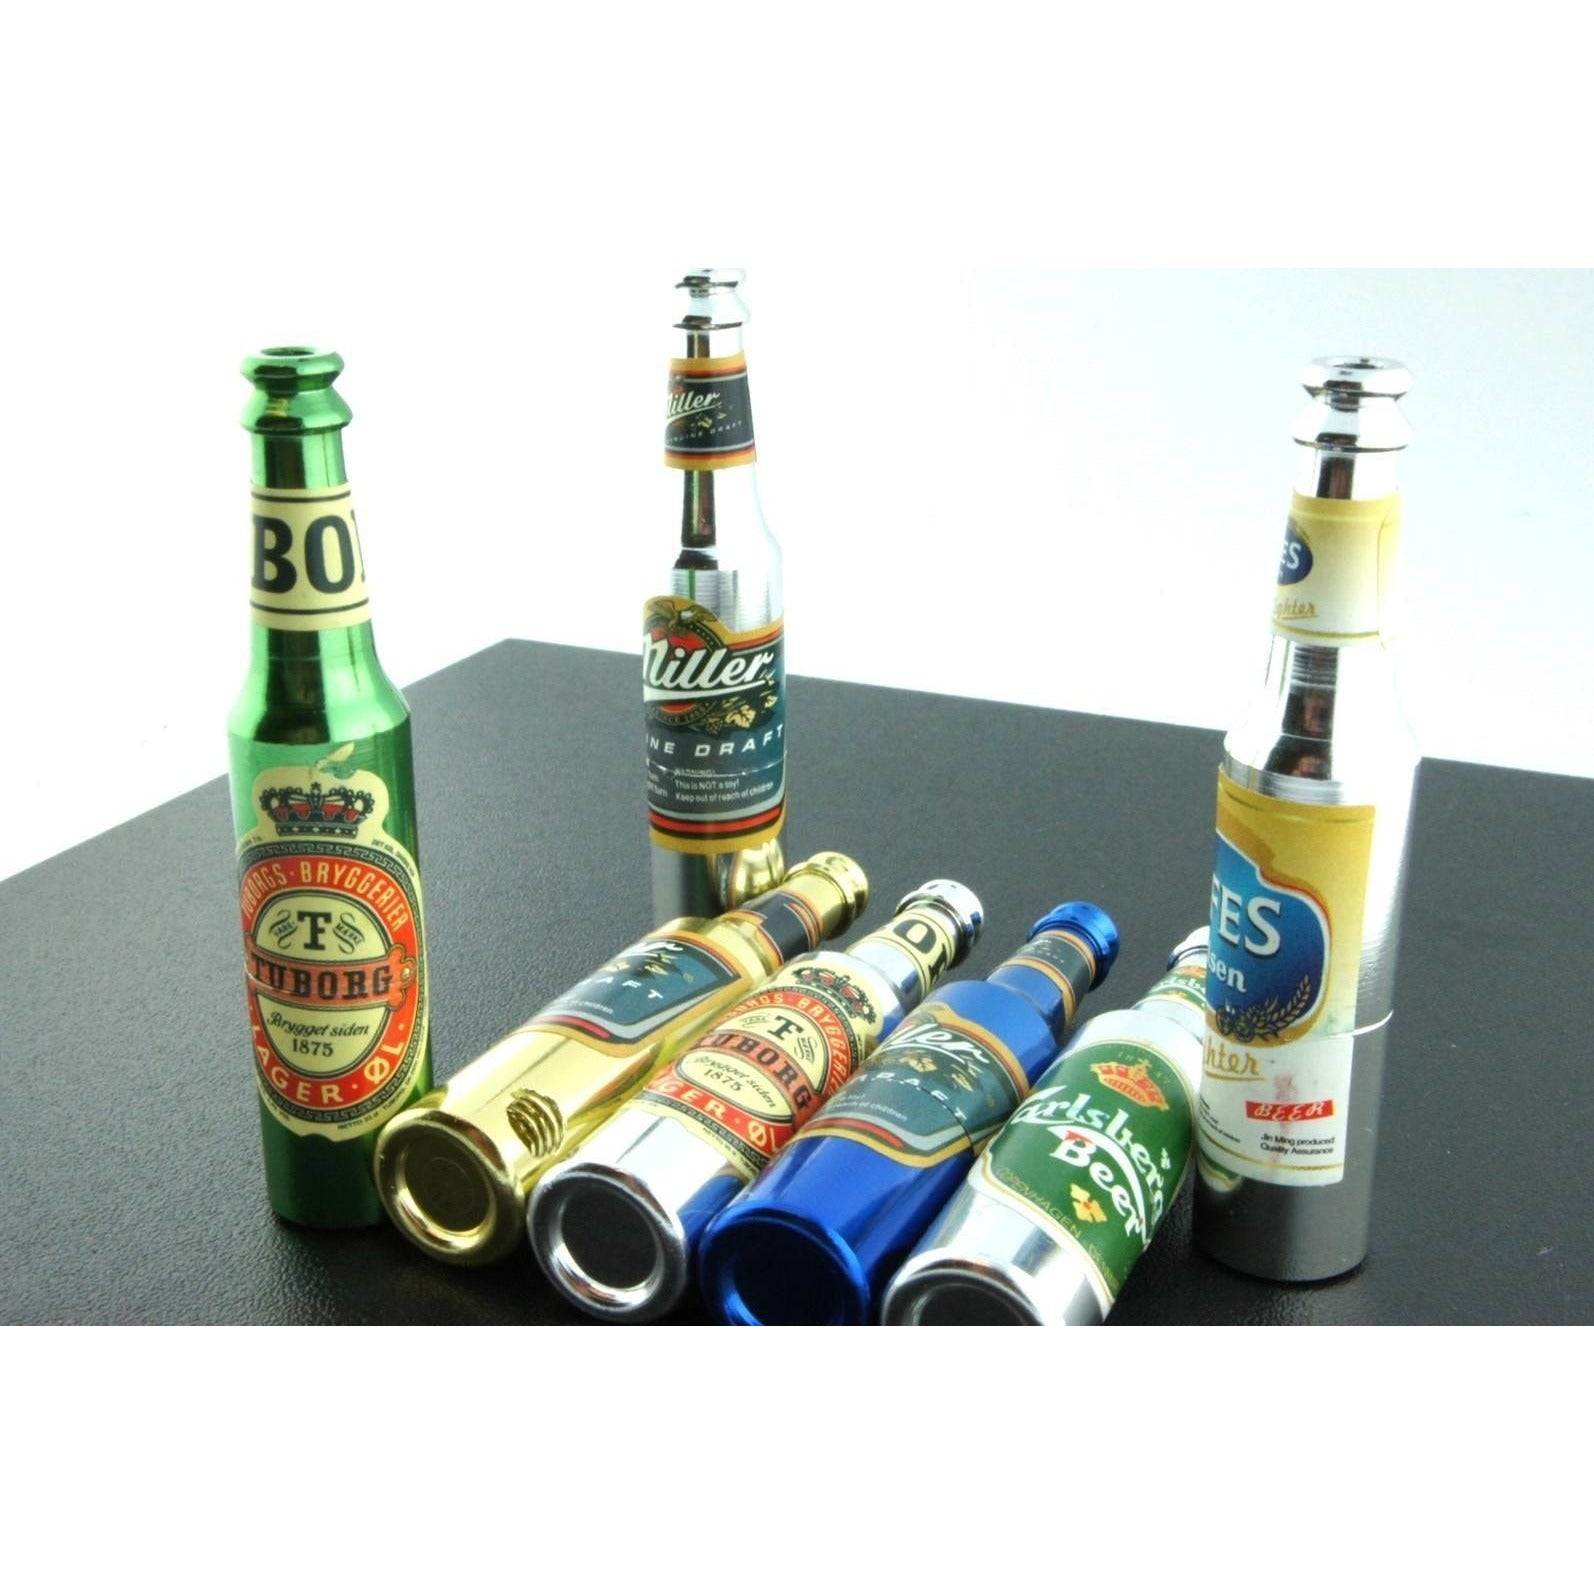 "3"" Mini Metal Smoking Pipe Hidden Portable Hand Pipe - Multi-Colored Bottle Shaped Pipe - WoodStonePipes.com   - 1"